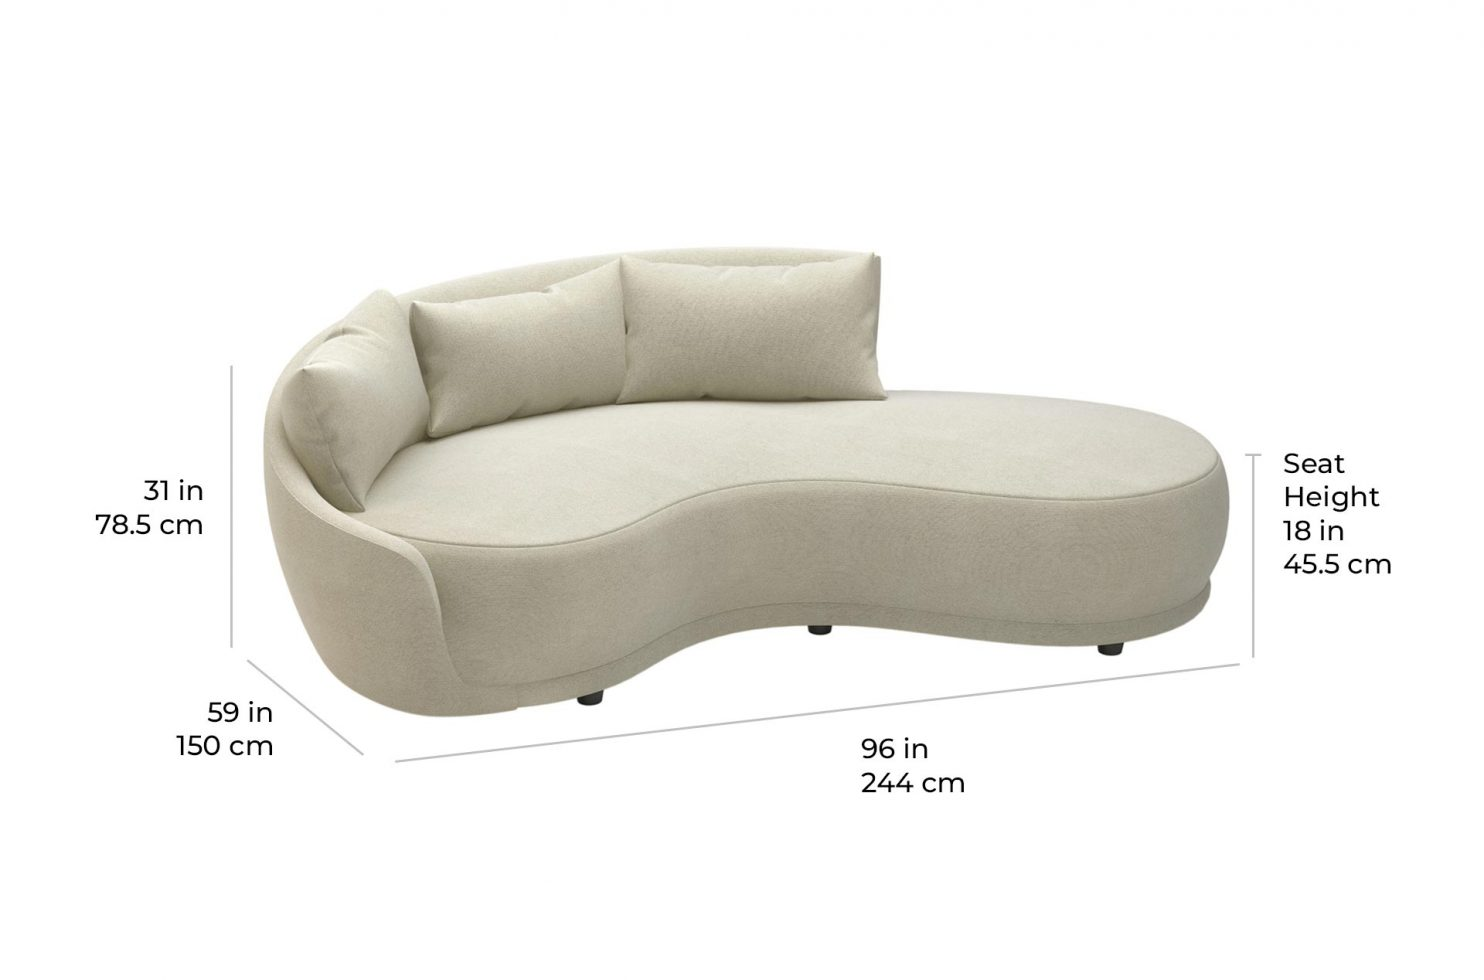 fizz grand royal one arm sofa w bumper 105FT001P2 SWB LAF scale dims